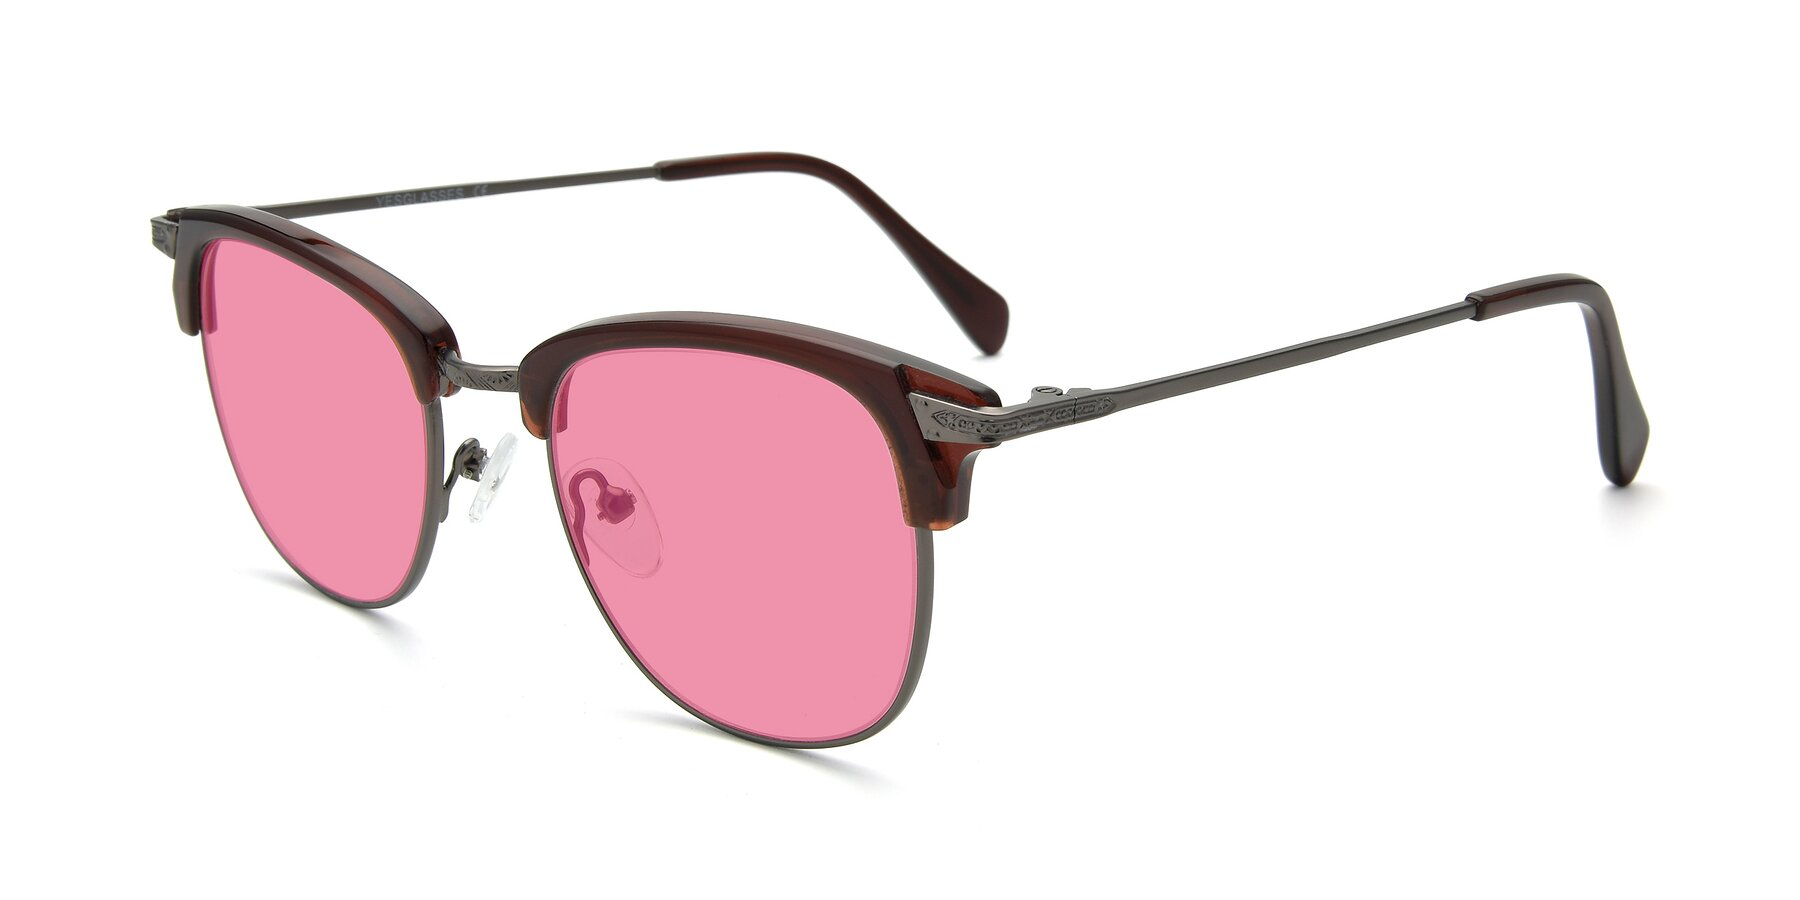 Angle of 17460 in Wine-Gun with Pink Tinted Lenses